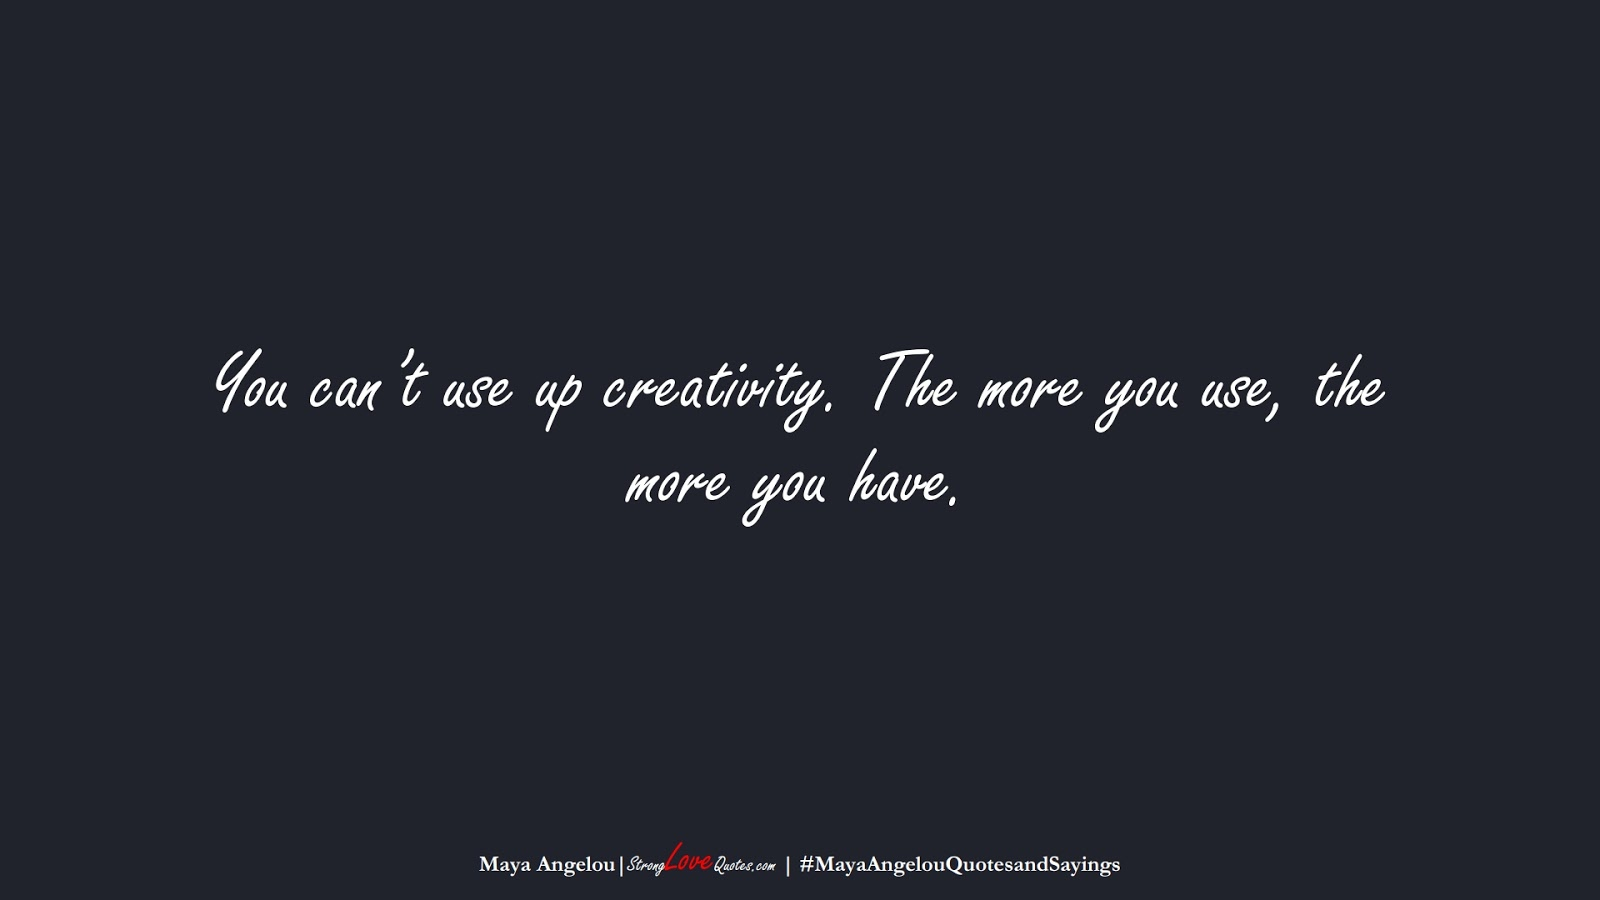 You can't use up creativity. The more you use, the more you have. (Maya Angelou);  #MayaAngelouQuotesandSayings